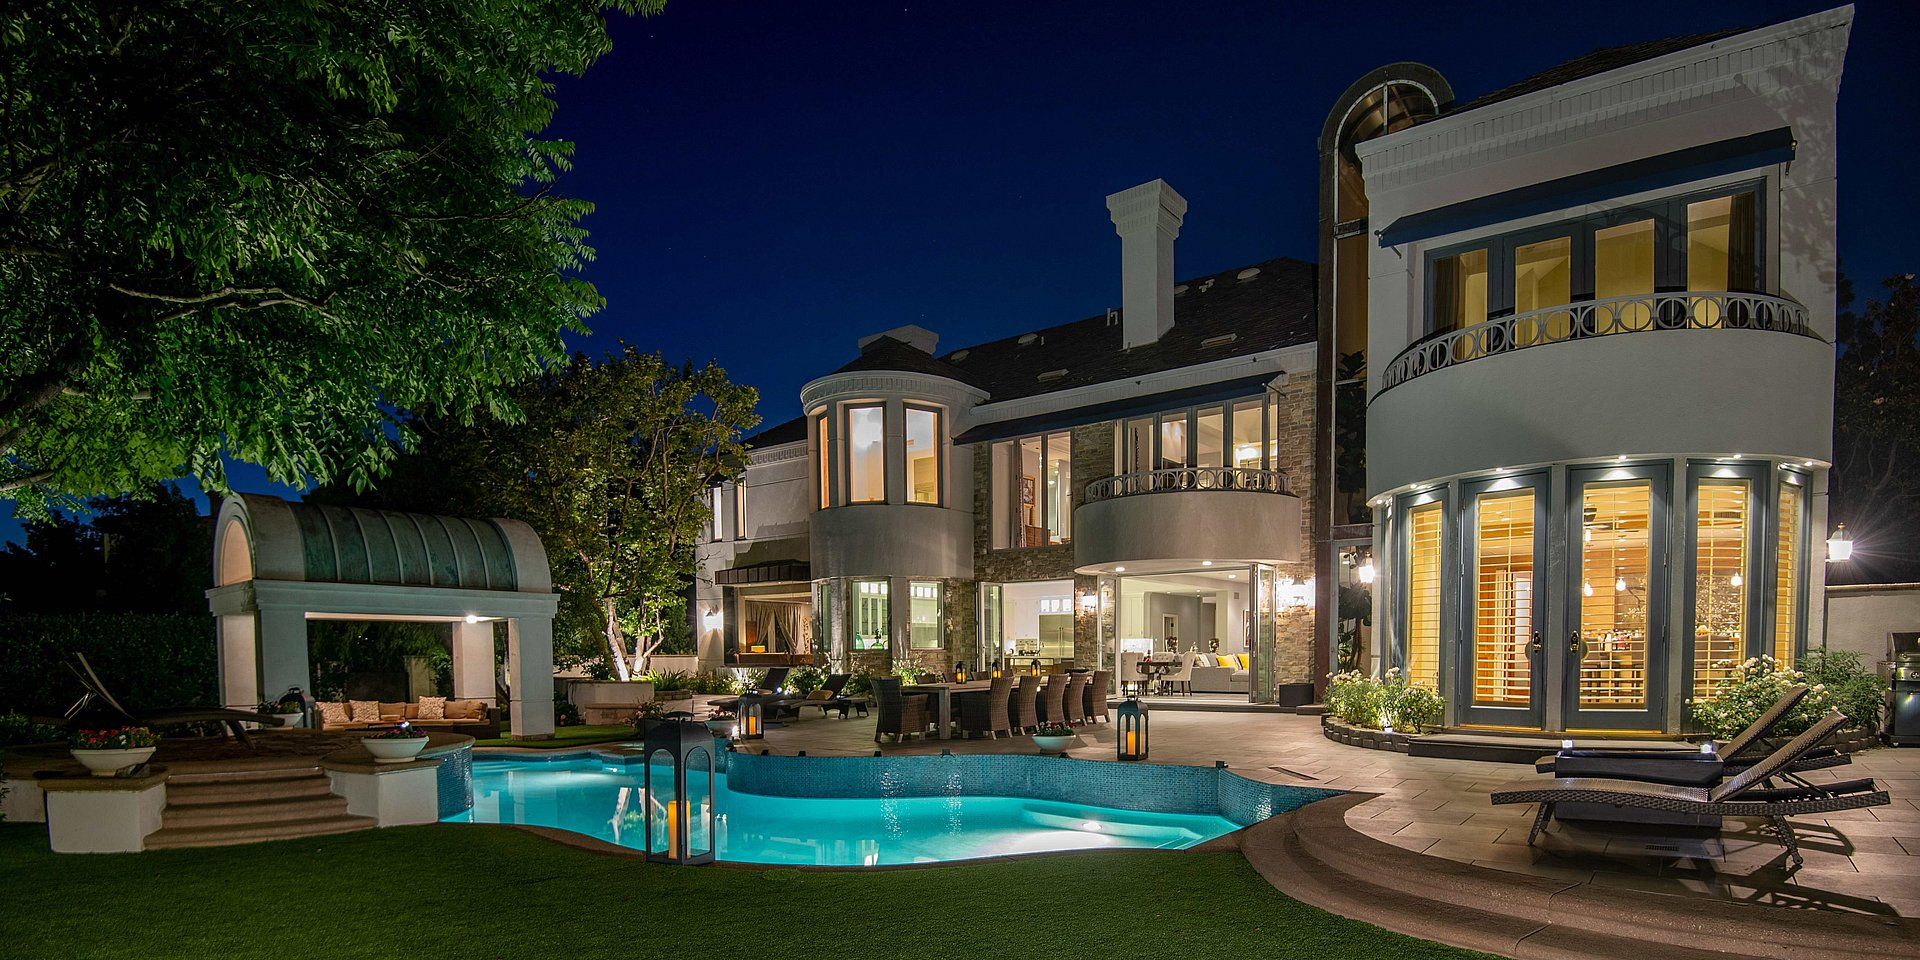 Coldwell Banker Residential Brokerage Lists Bel Air Property for $12.995 Million